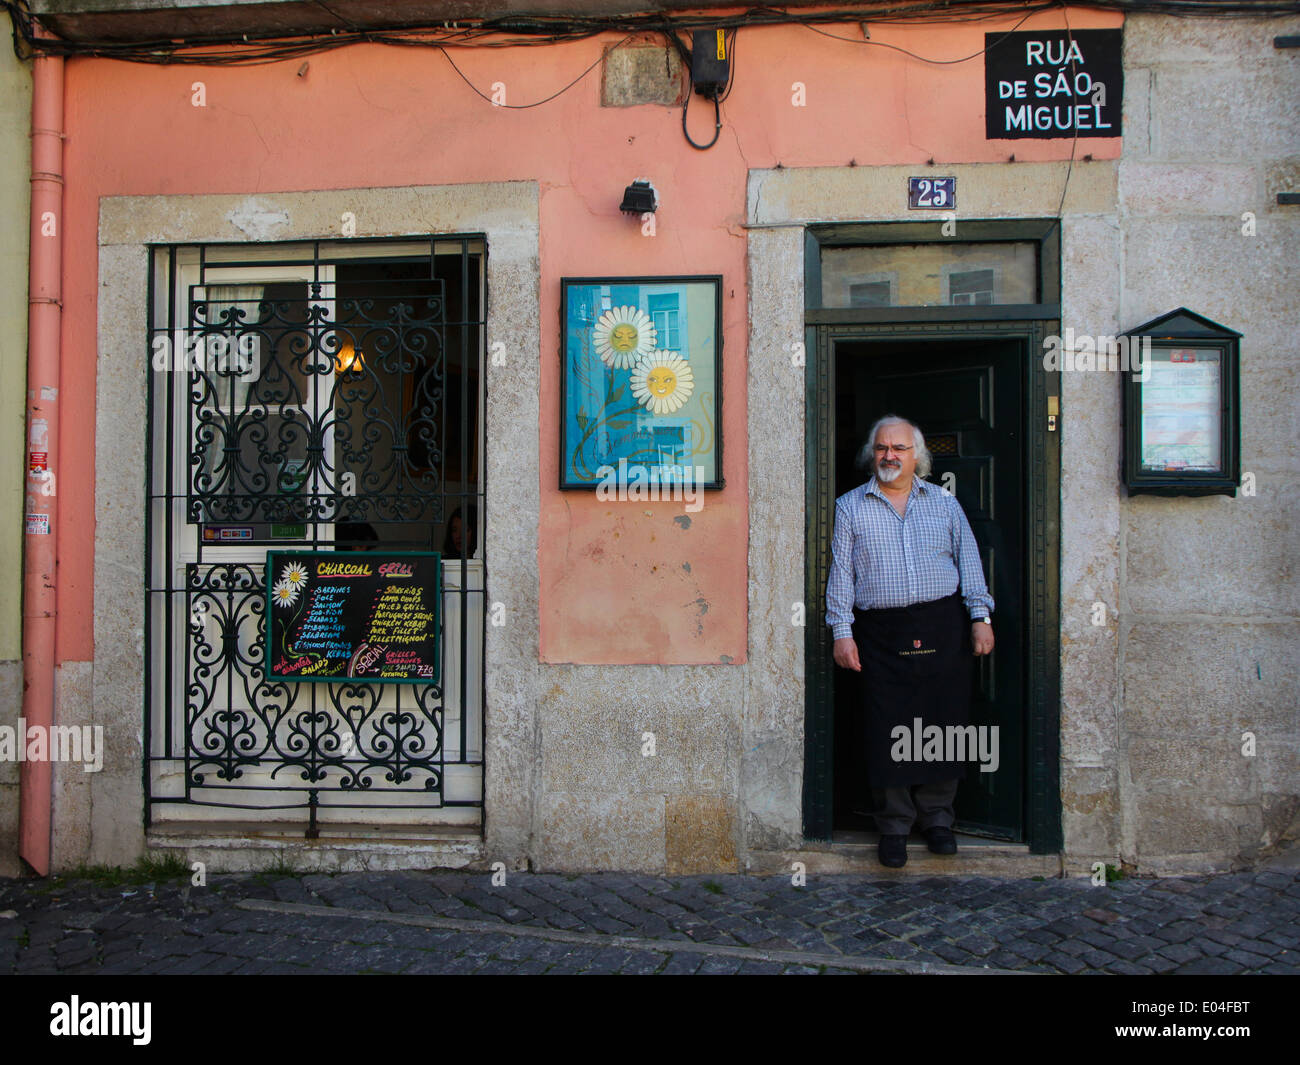 Man in front of a restaurant in Alfama, Lisbon - Stock Image